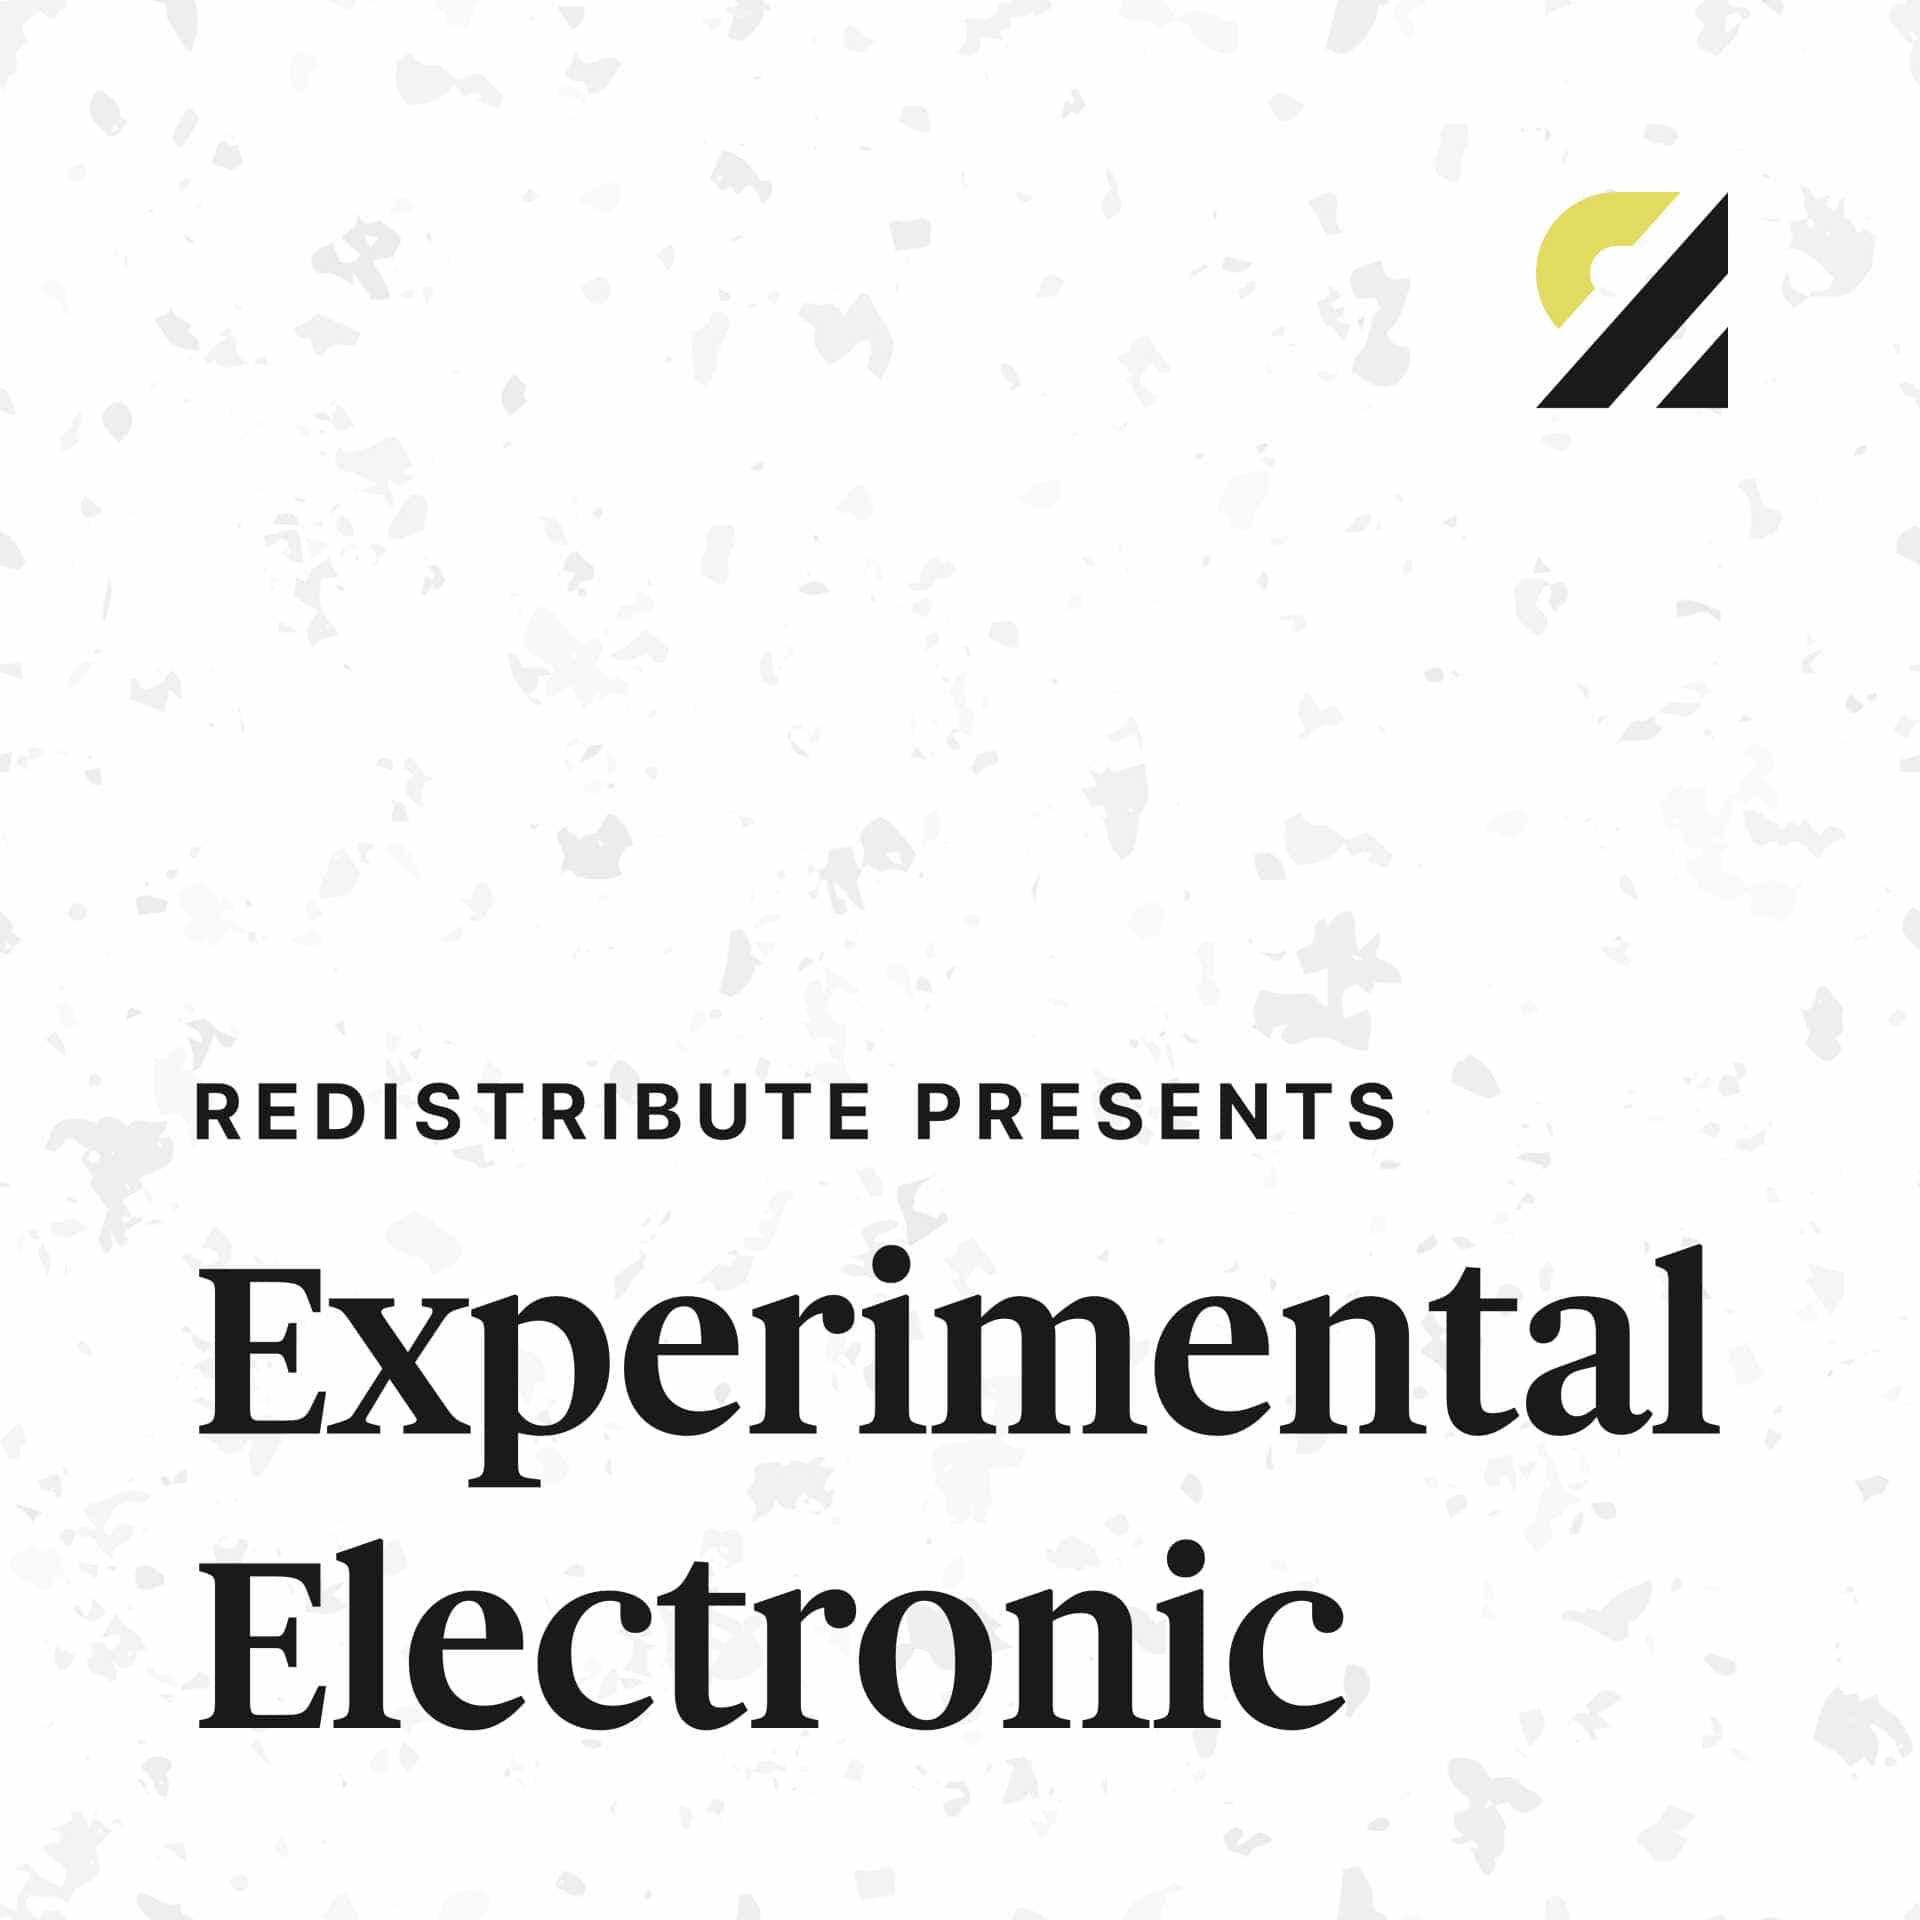 Cover image for the playlist Redistribute Presents Experimental Electronic